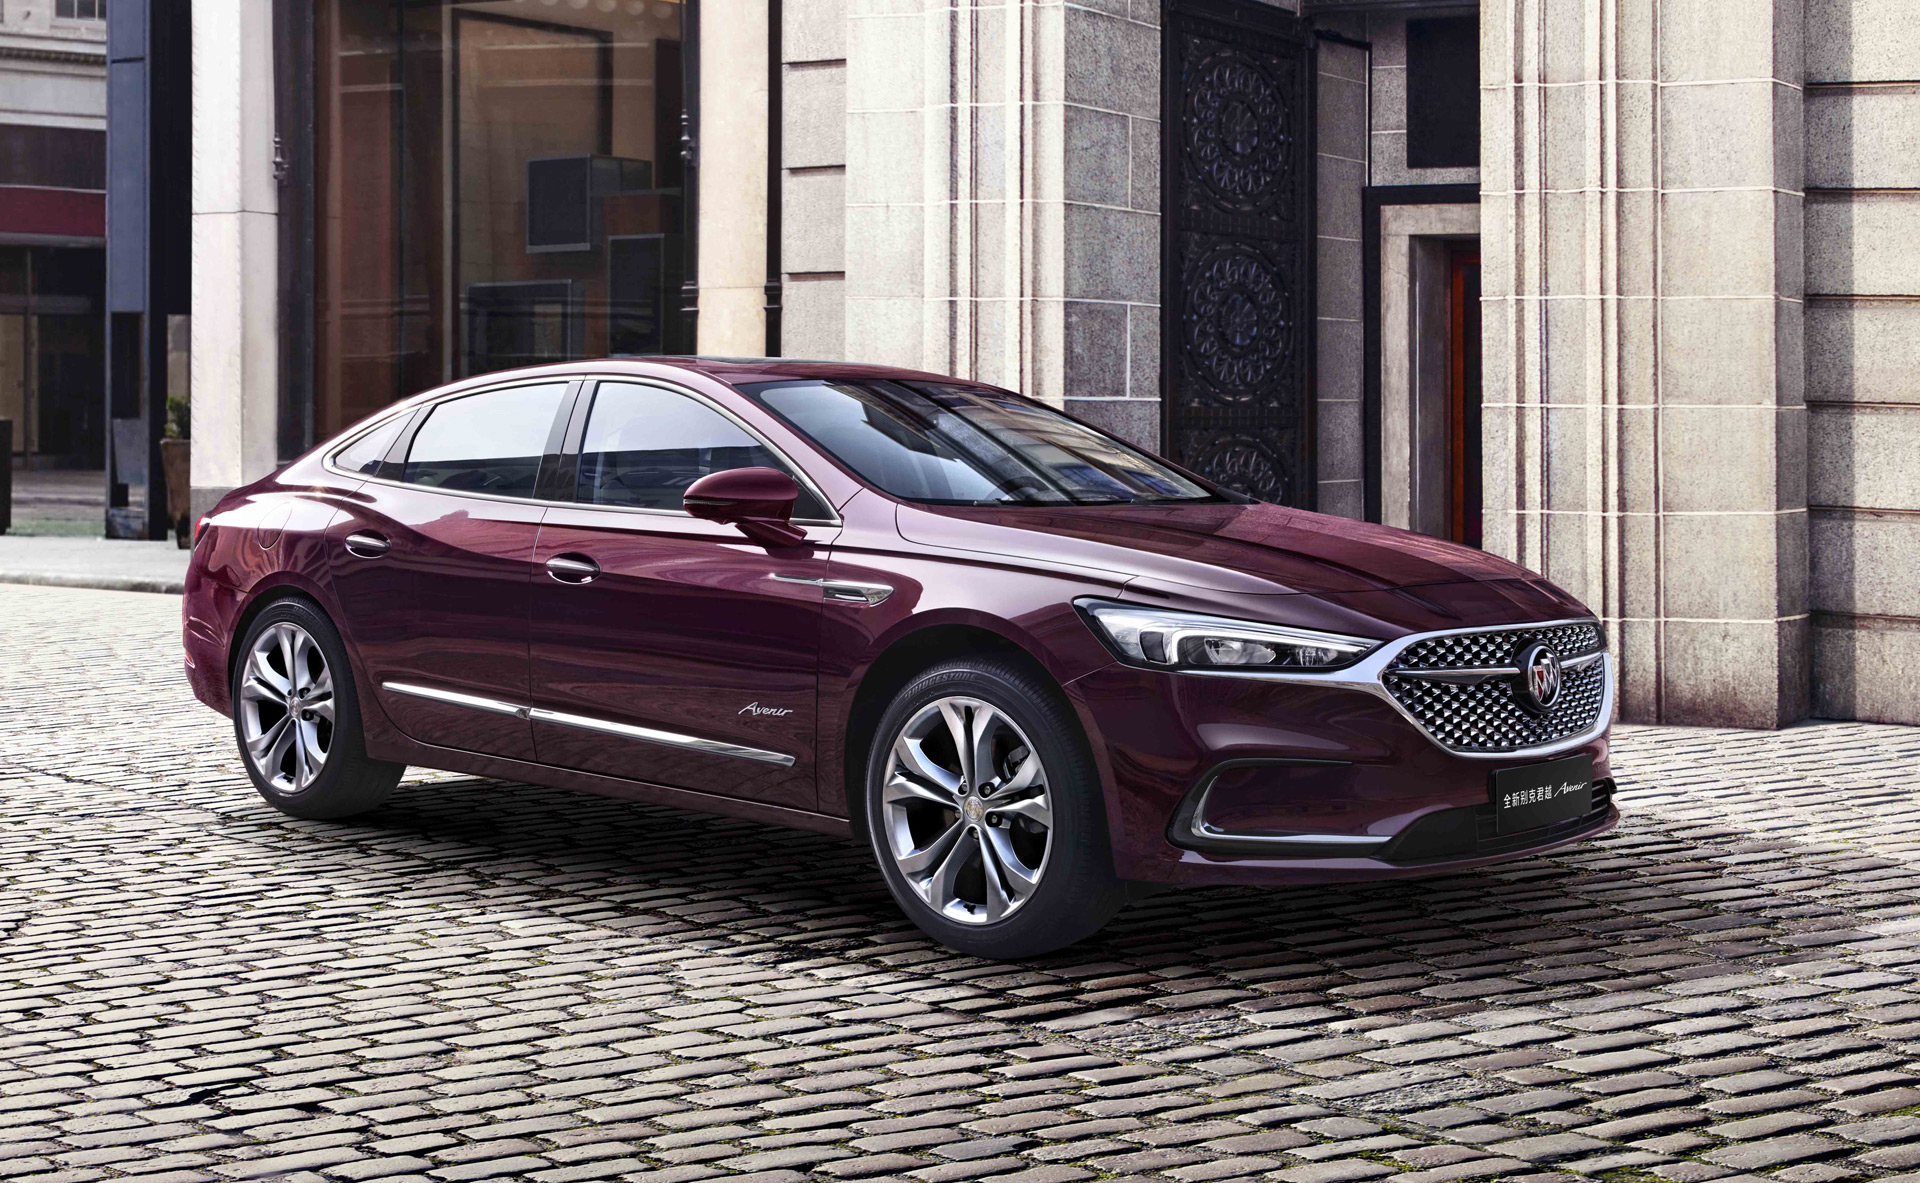 2020 Buick Lacrosse Made Handsome Just As It's Dropped In Us Show Me A New 2022 Buick Lacrosse